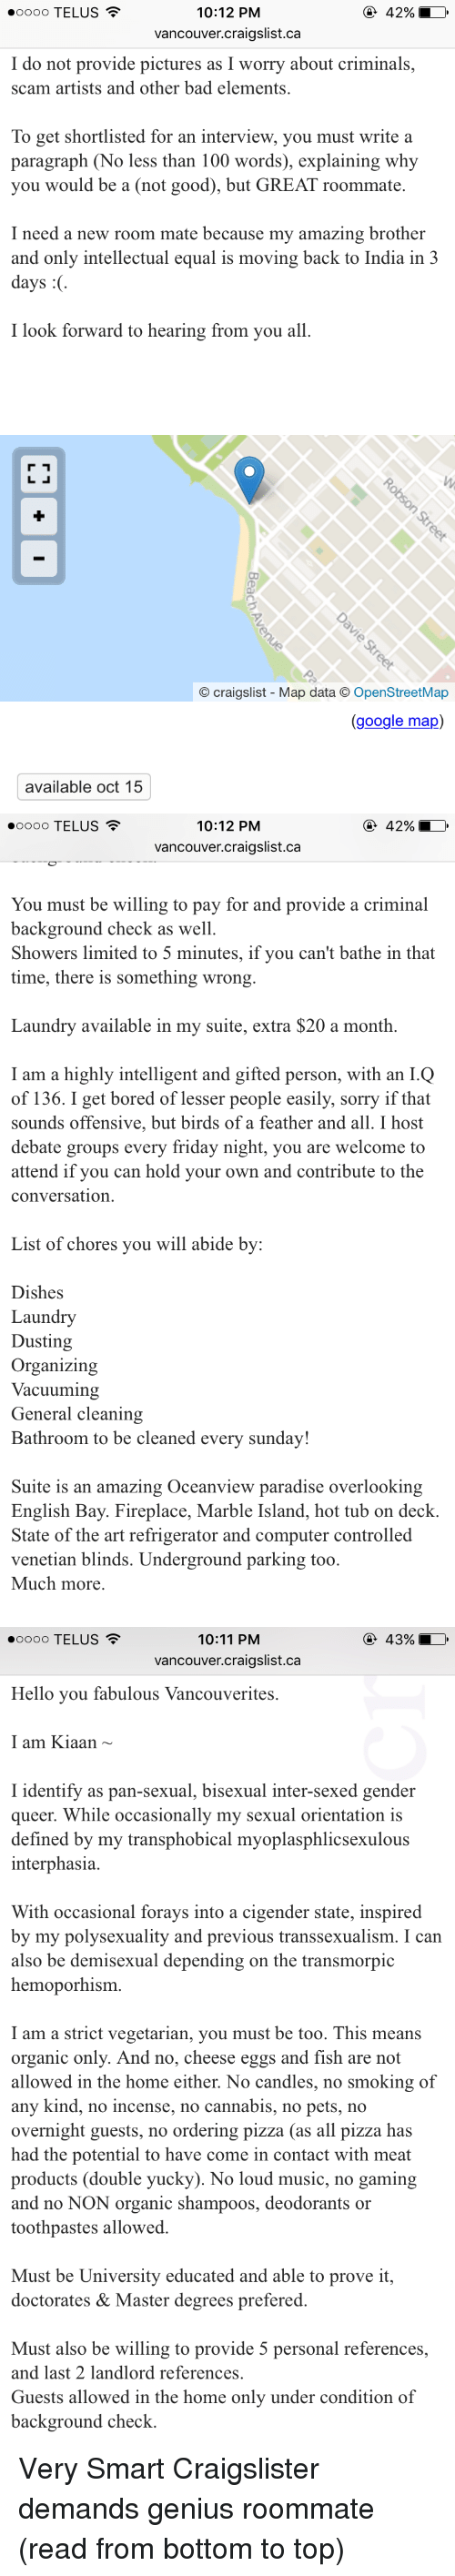 top 10 degrees to get craigslist english